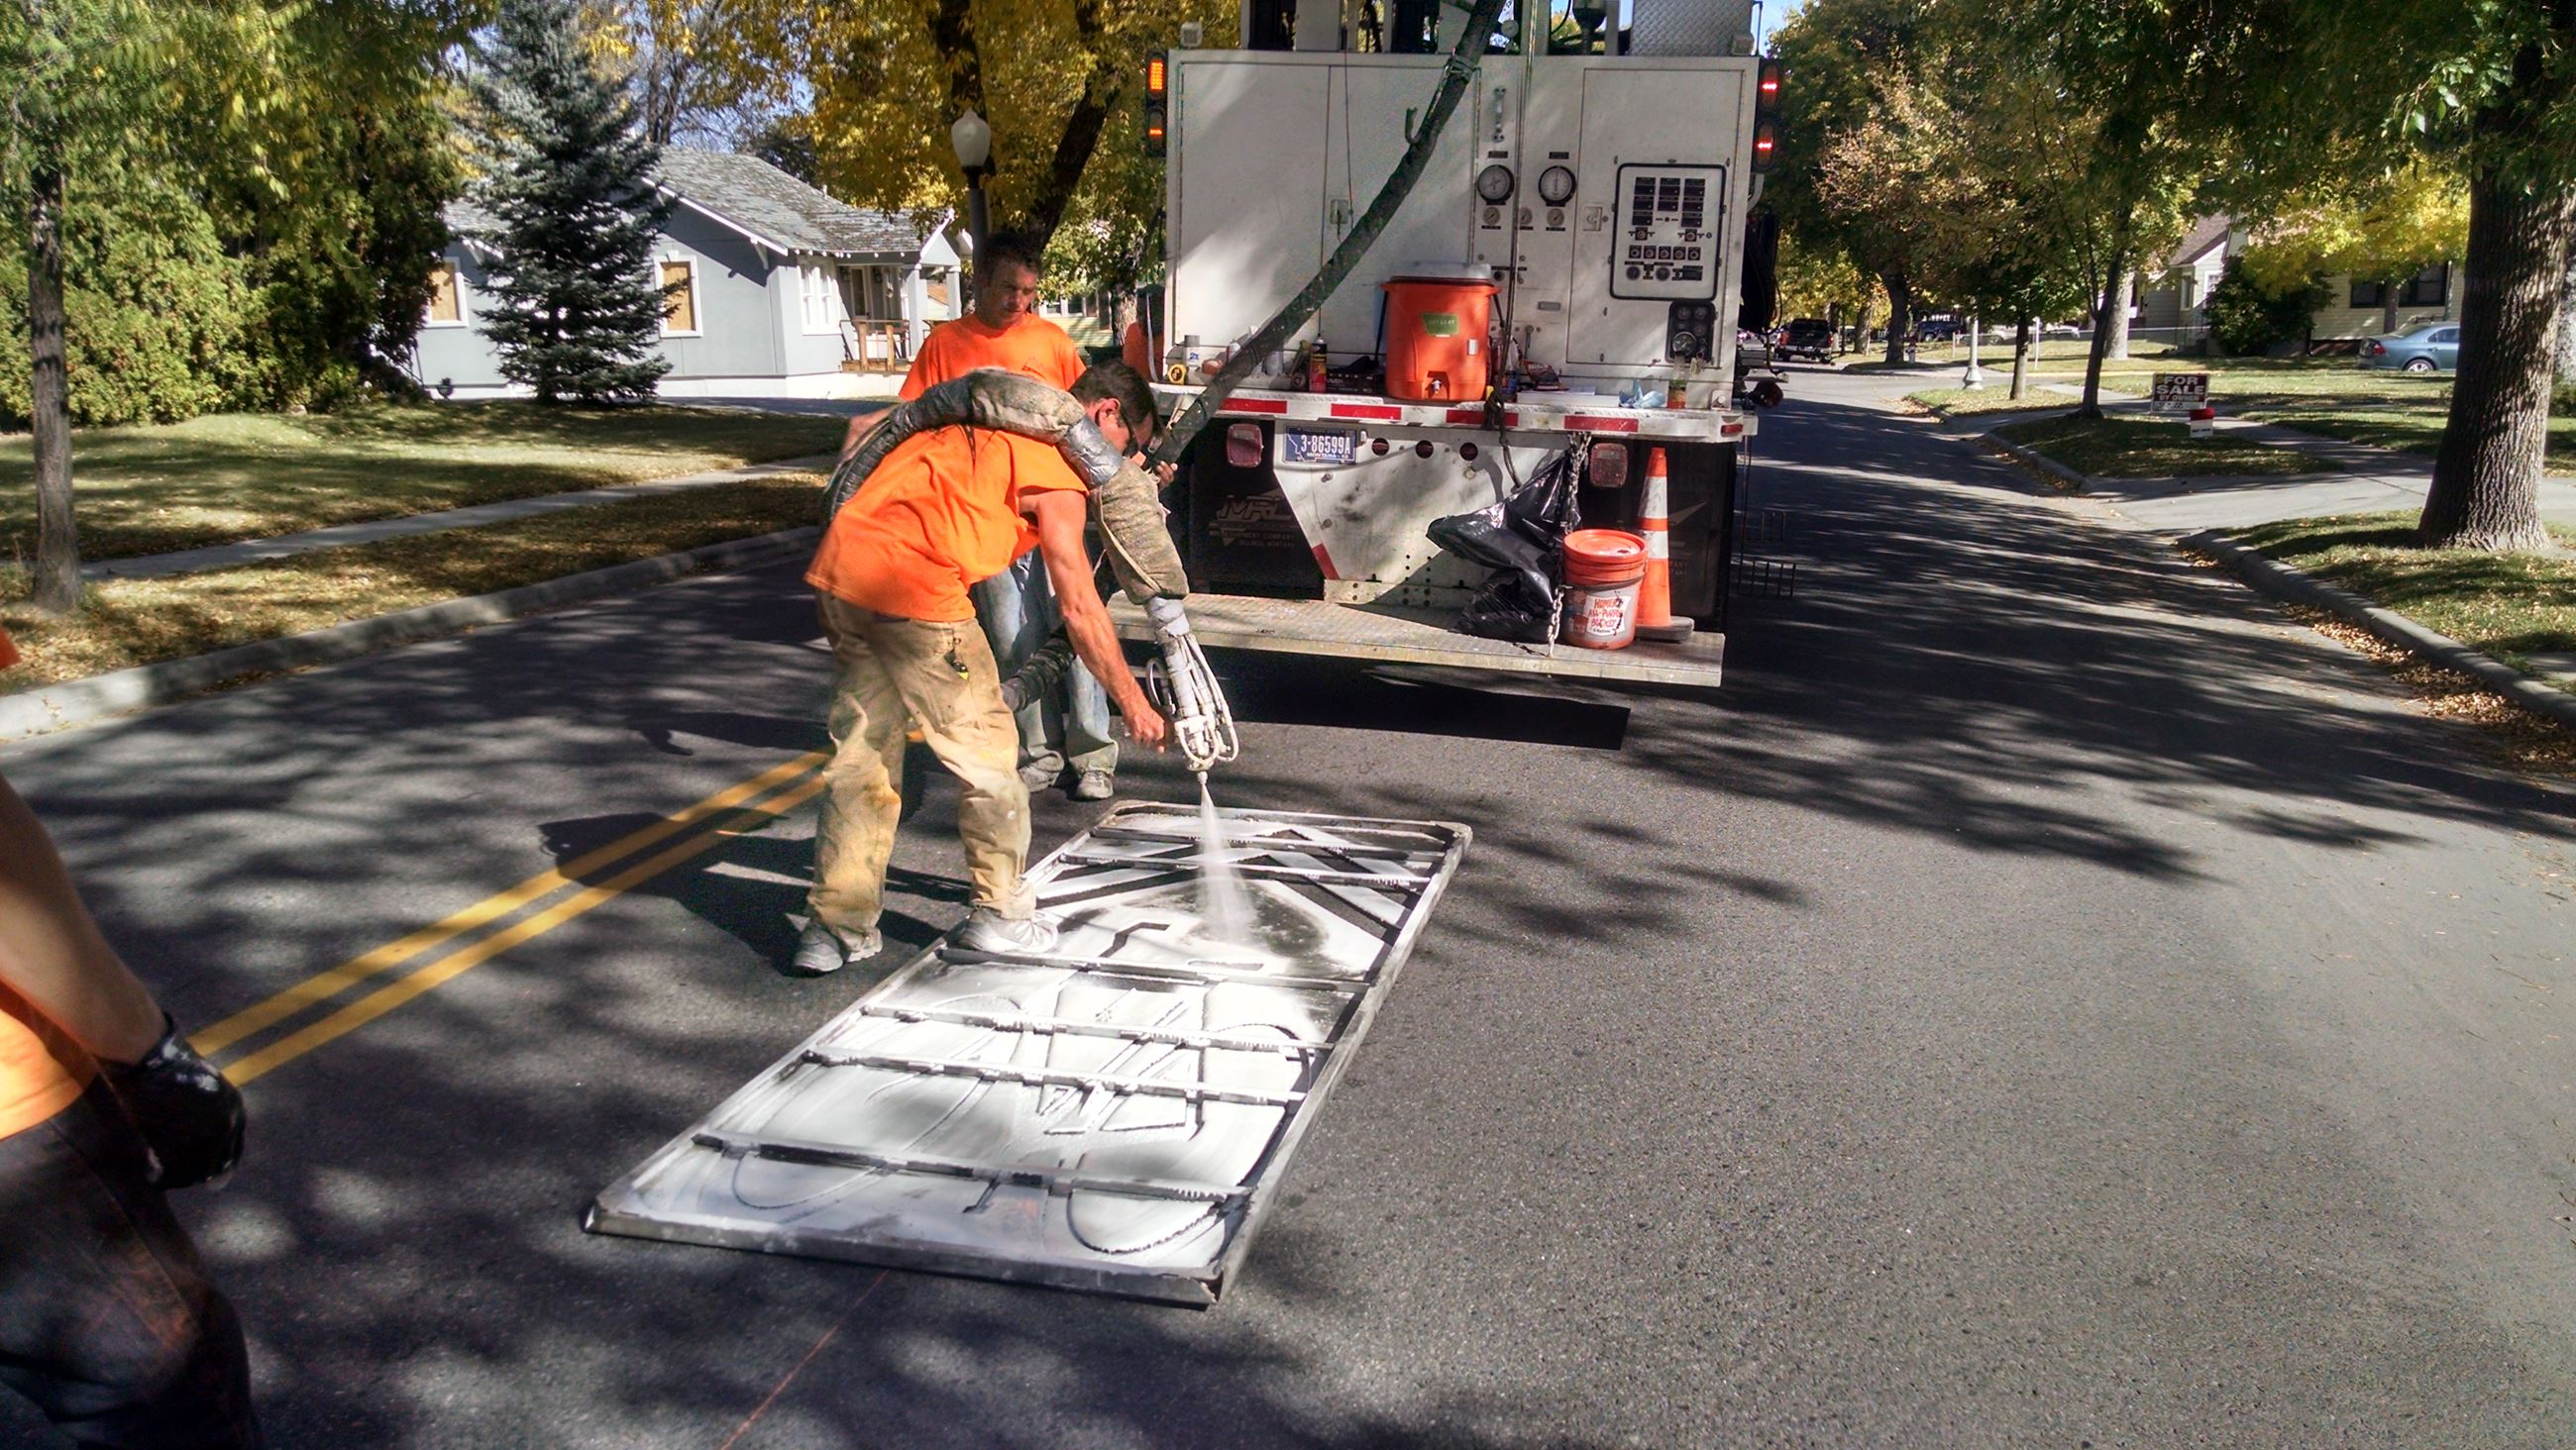 Shared Lane Marking Install